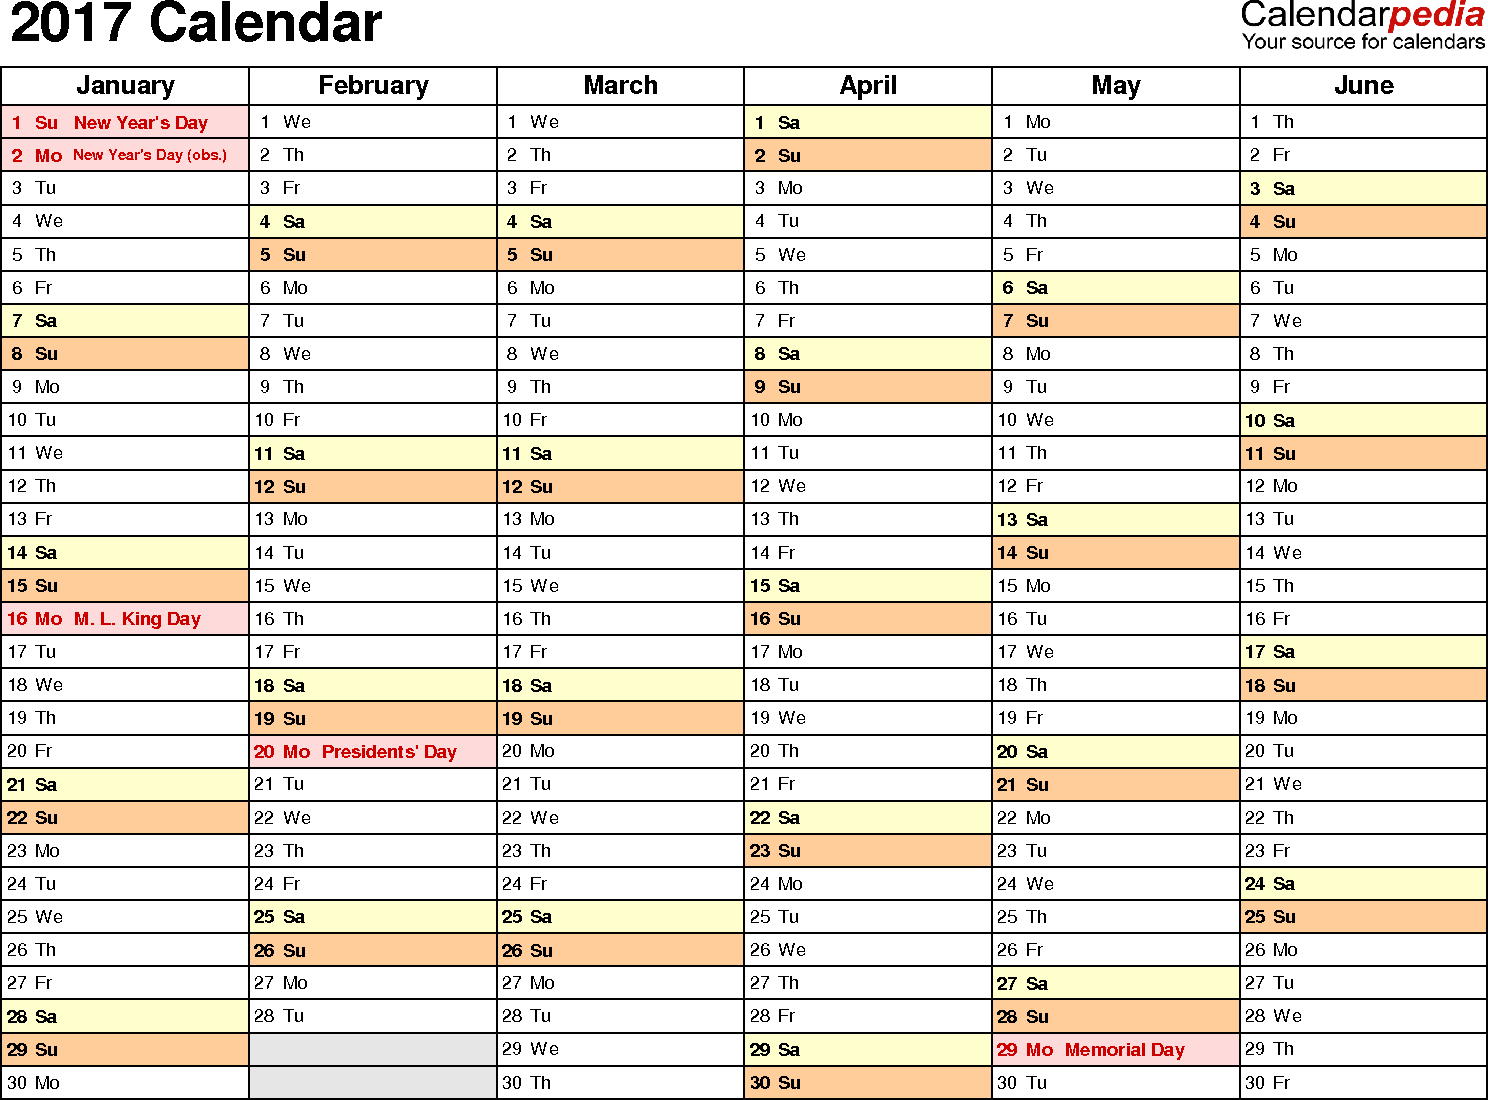 Ediblewildsus  Marvellous  Calendar  Download  Free Printable Excel Templates Xls With Marvelous Template   Calendar For Excel Months Horizontally  Pages Landscape Orientation With Archaic How To Get The Developer Tab In Excel Also Excel How To In Addition How To Separate Cells In Excel And How To Merge Two Columns In Excel As Well As Excel Round Up Additionally How To Import Contacts From Excel To Outlook From Calendarpediacom With Ediblewildsus  Marvelous  Calendar  Download  Free Printable Excel Templates Xls With Archaic Template   Calendar For Excel Months Horizontally  Pages Landscape Orientation And Marvellous How To Get The Developer Tab In Excel Also Excel How To In Addition How To Separate Cells In Excel From Calendarpediacom